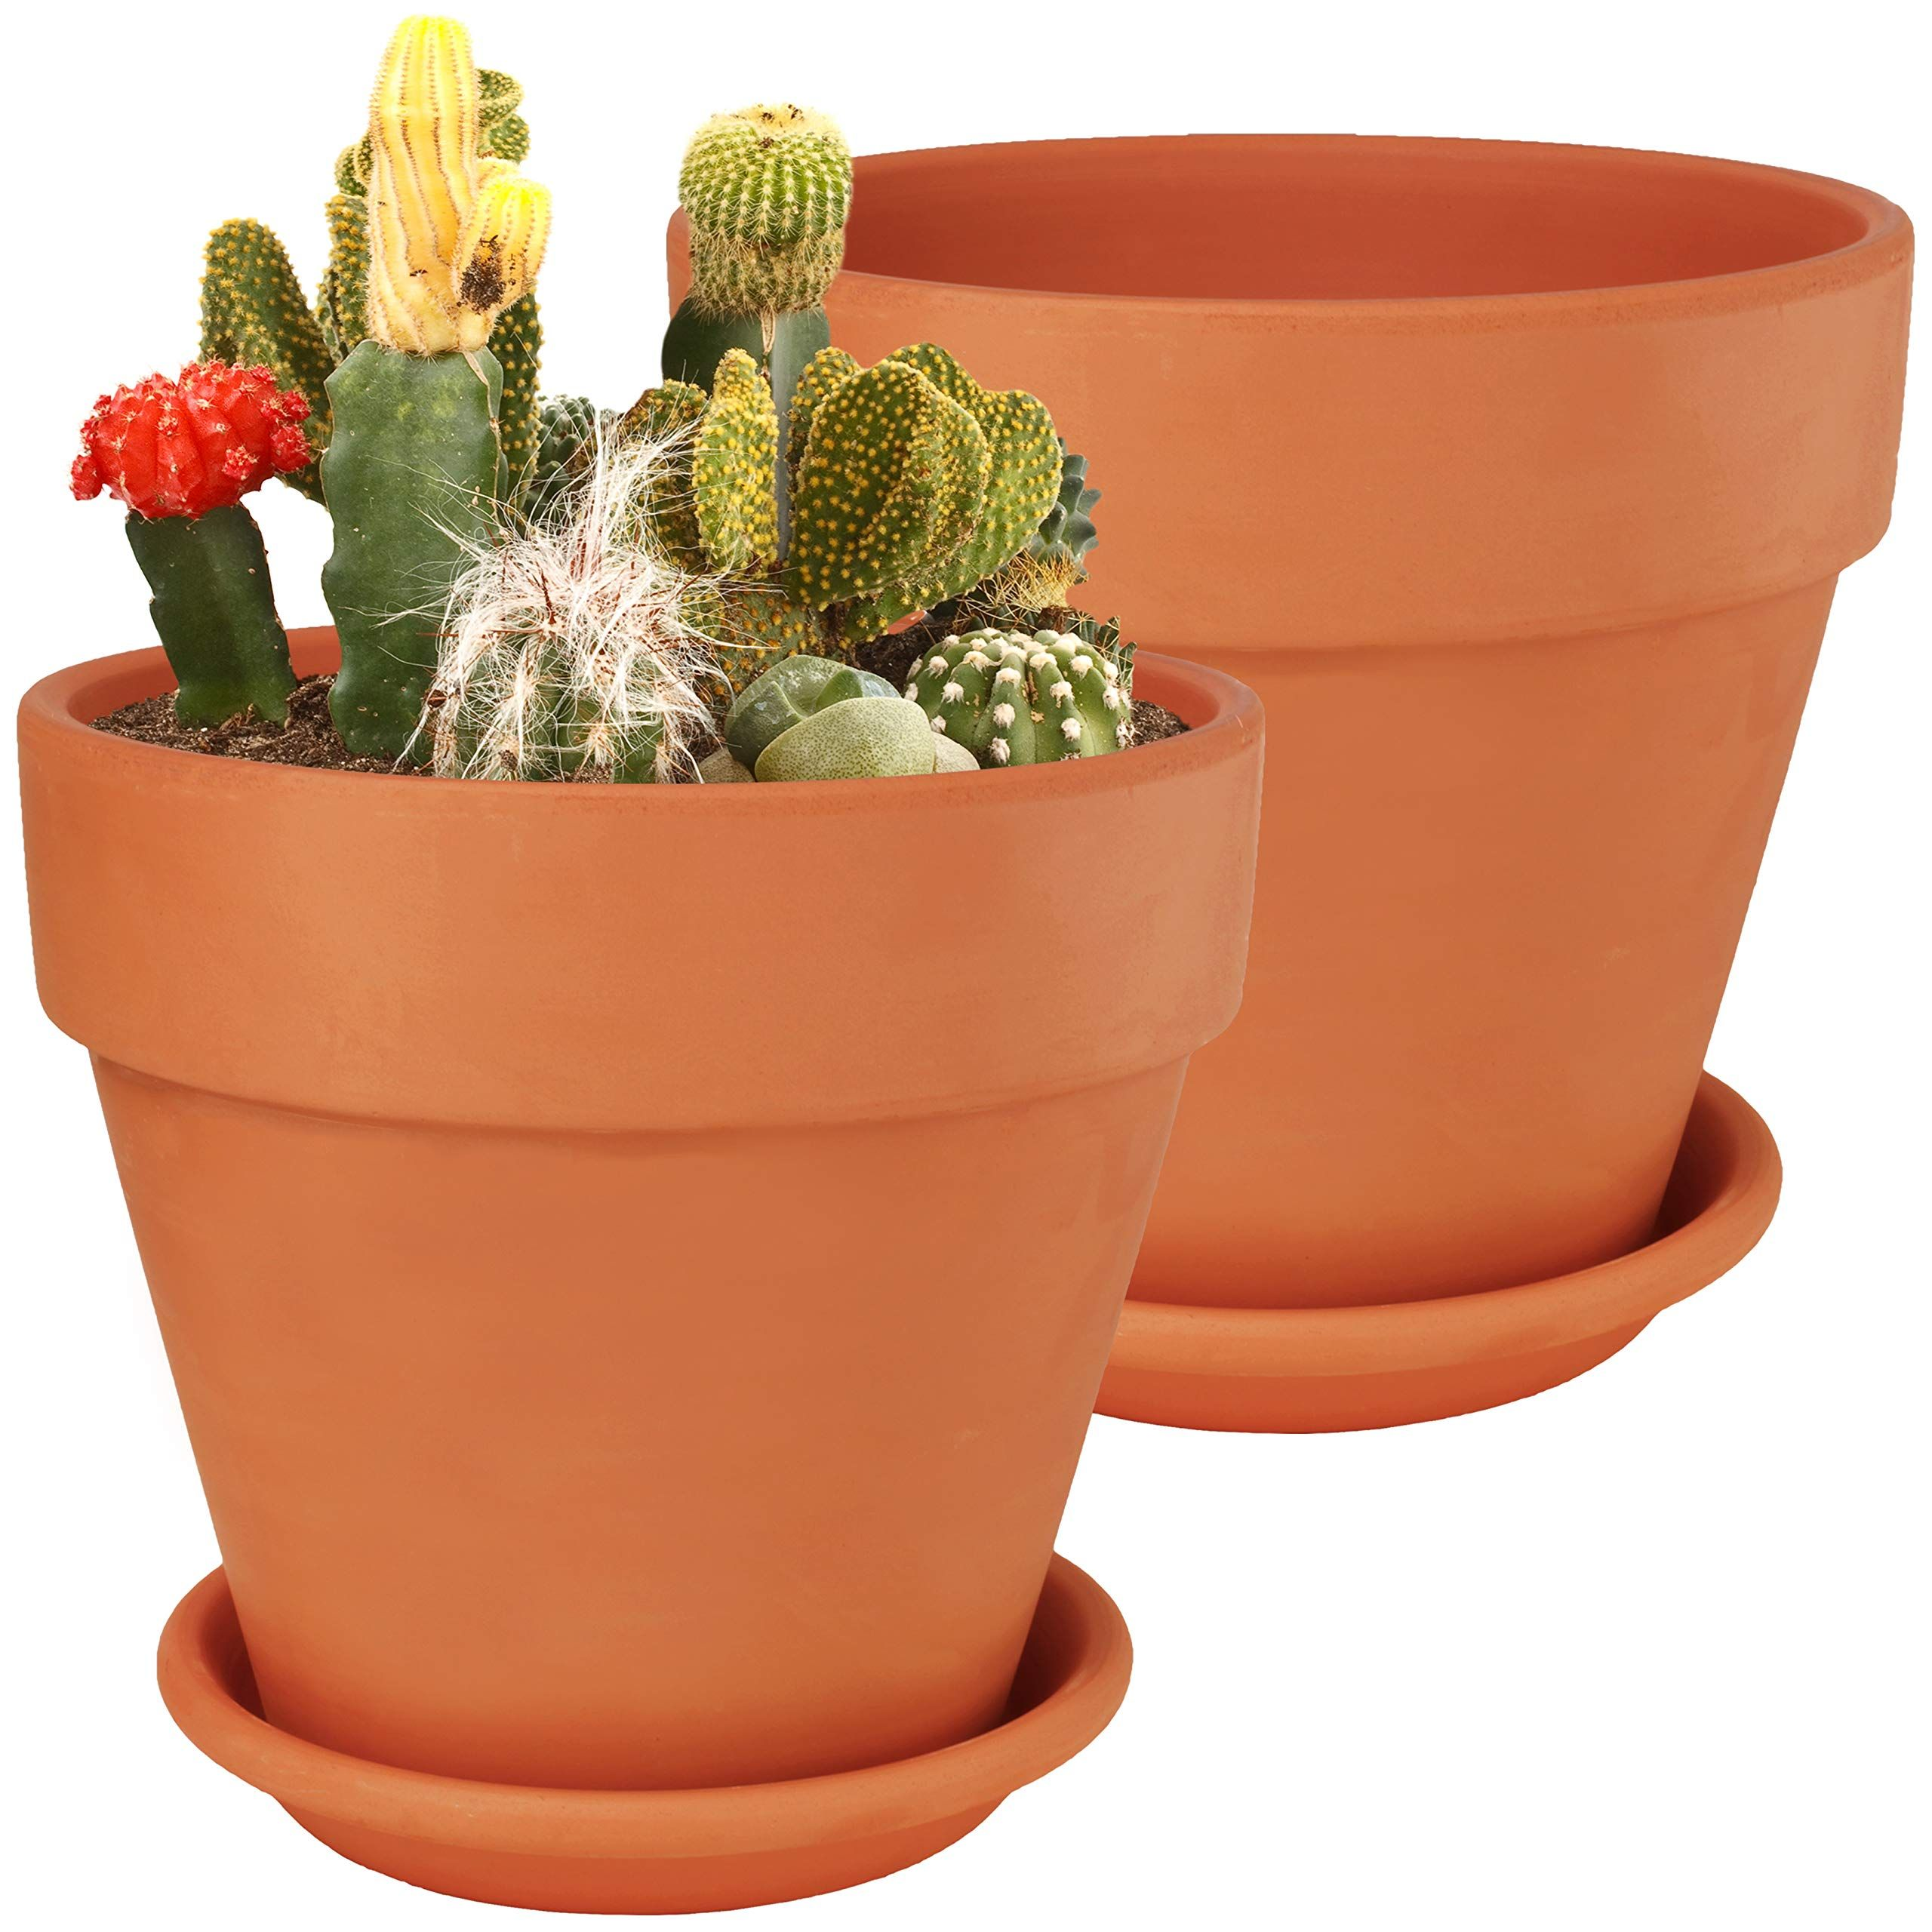 8 Inch Large Terra Cotta Pots With Saucer 2 Pack Clay Flower Pots With Saucers Flower Pot Planters For Indoor Outdoor Plant Succulen Clay Flower Pots Flower Pots Large Terracotta Pots